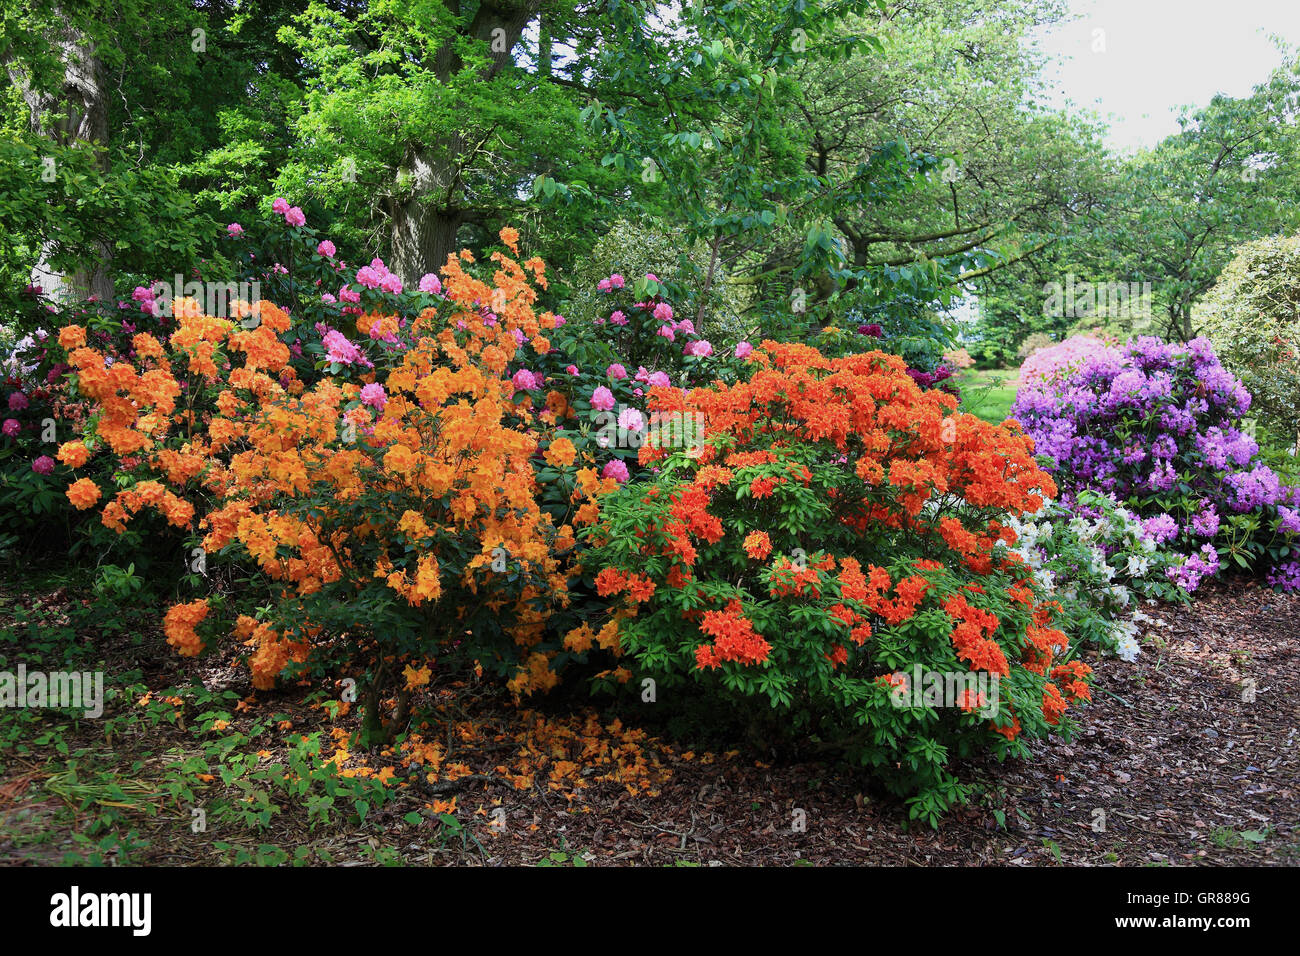 Rhododendrons, rhododendron, plant type from the family of the heather plants, Ericaceae, rhododendron bushes in - Stock Image